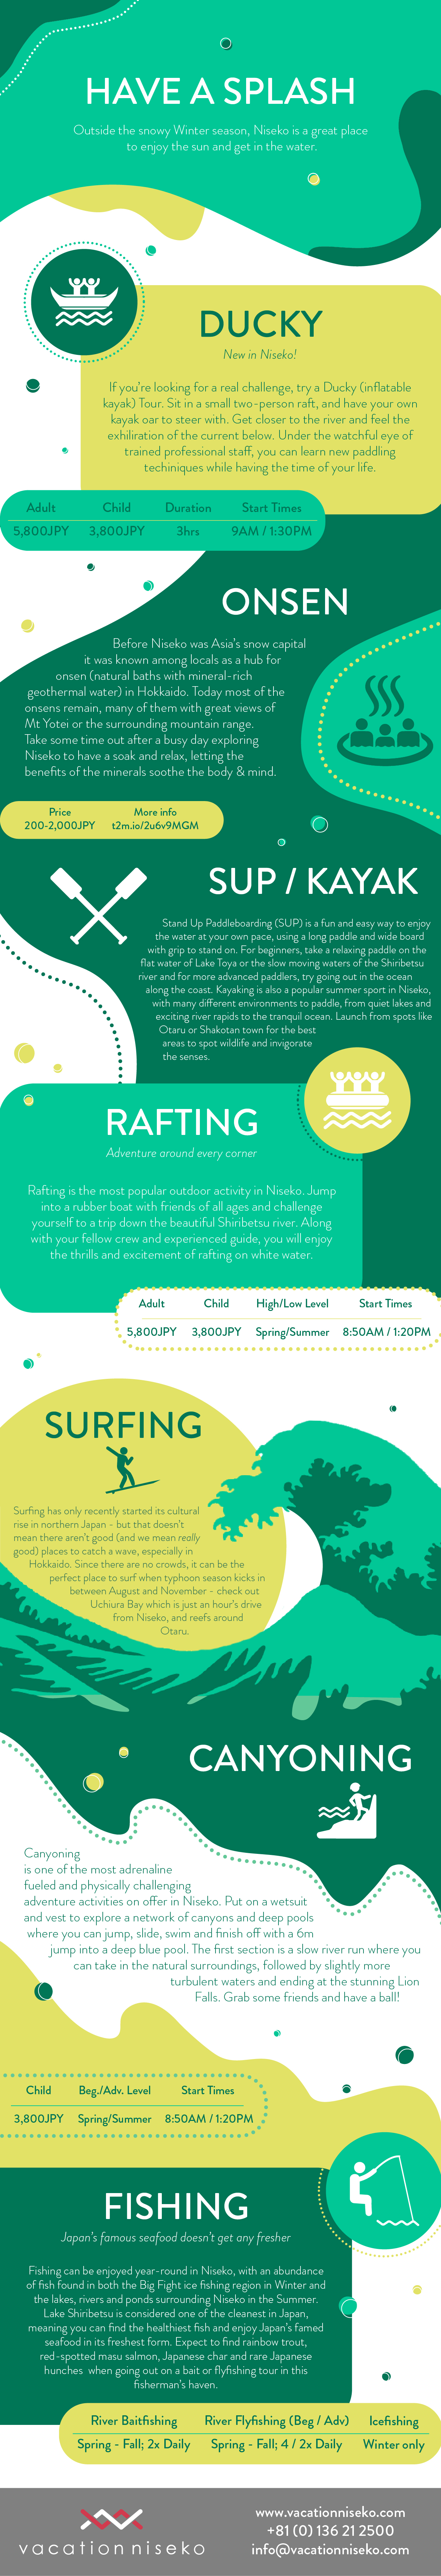 An infographic outlining Summer activities in Niseko: SUP, kayaking, fishing, onsen, ducky tours, rafting, surfing, canyoning and more.